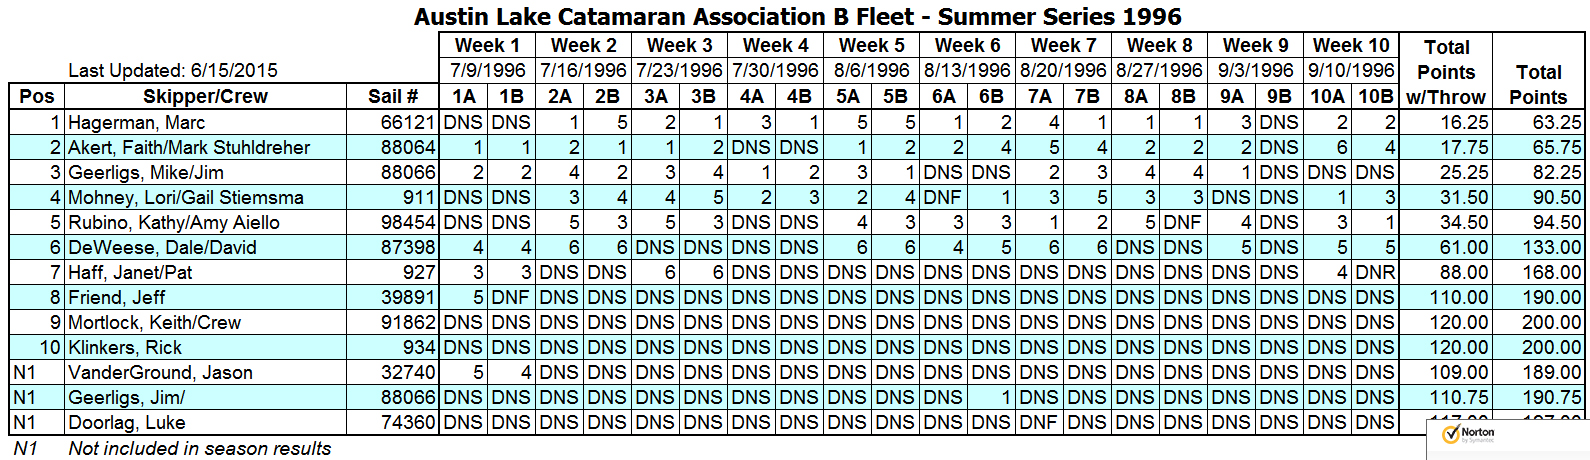 1996 Summer B Fleet Results